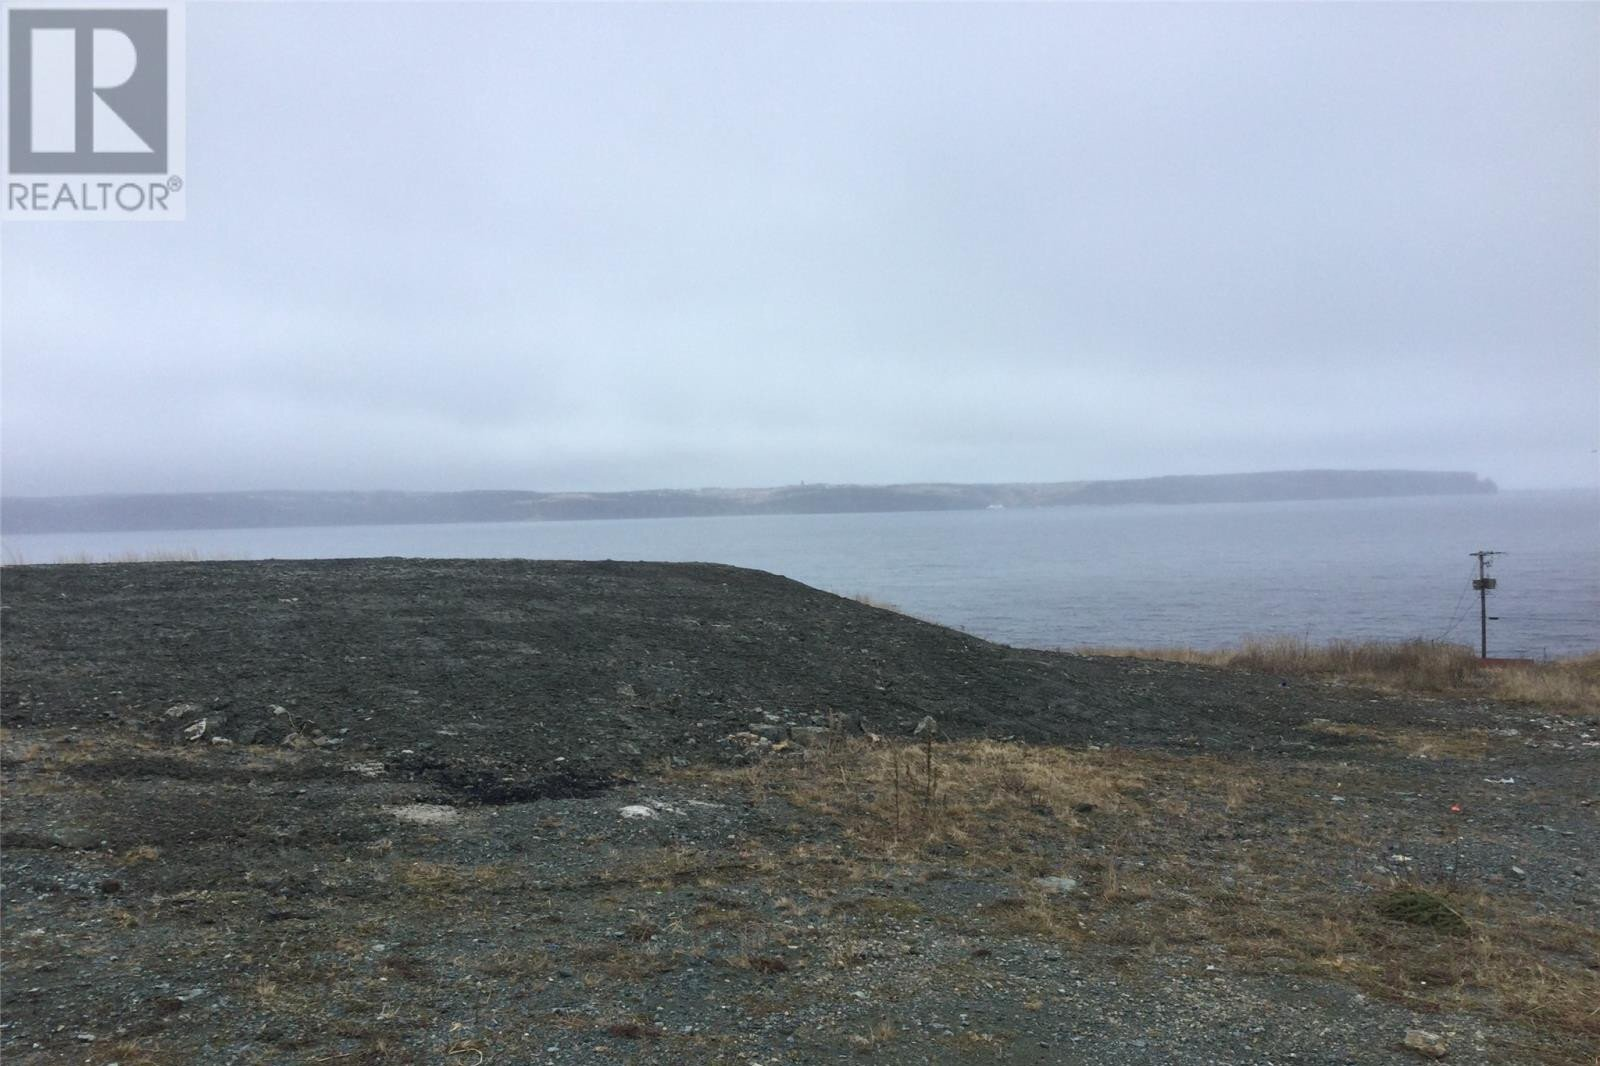 Residential property for sale at 11 Oceans  Portugal Cove - St. Philips Newfoundland - MLS: 1222417